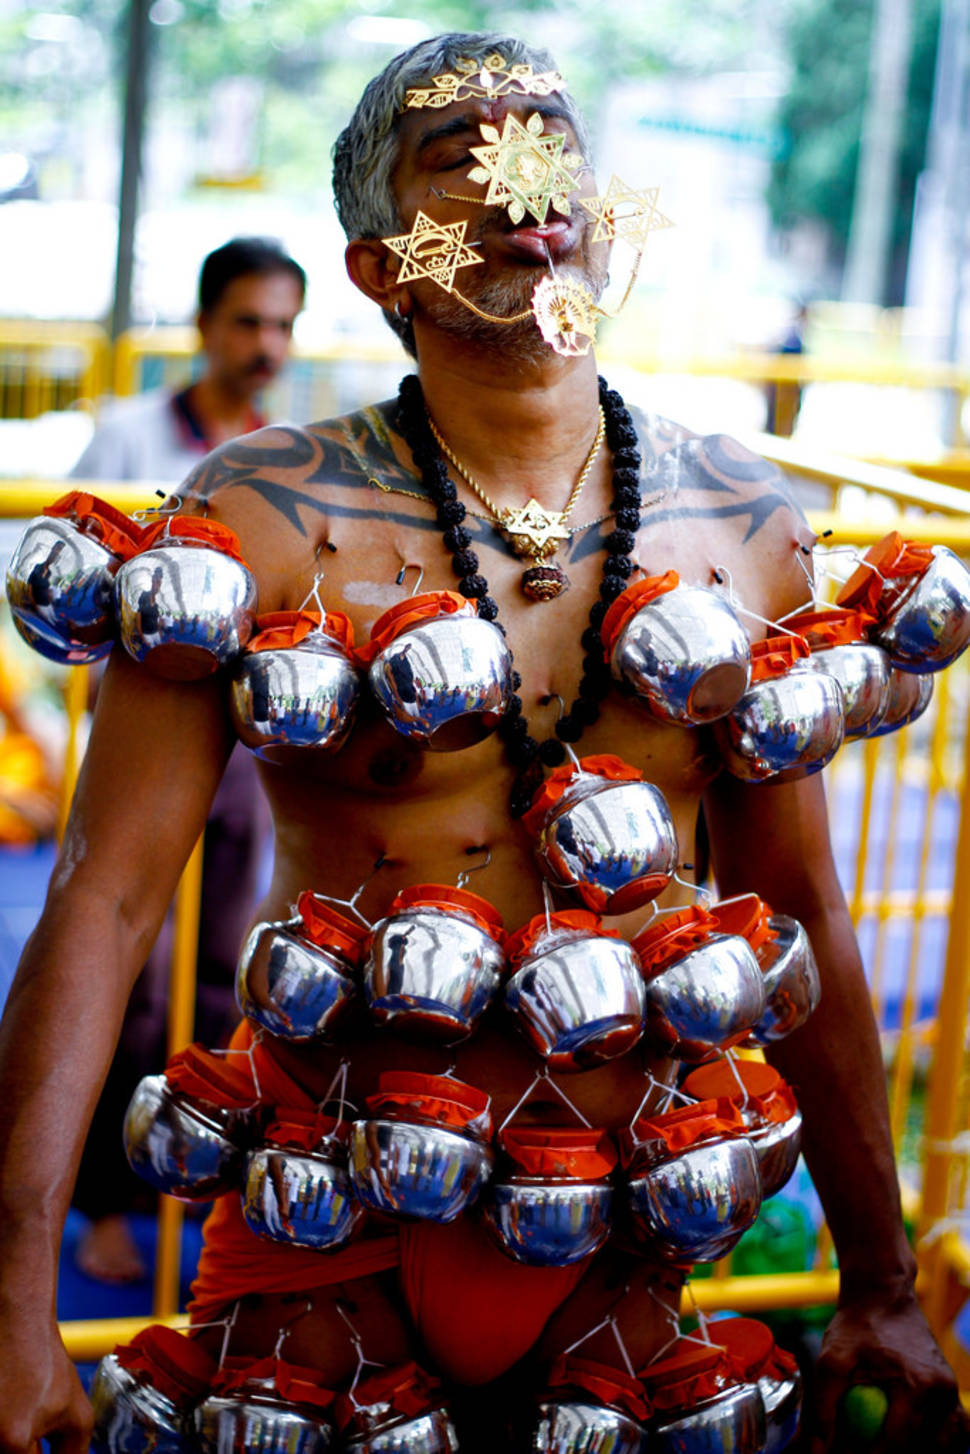 Best time to see Thaipusam in Singapore